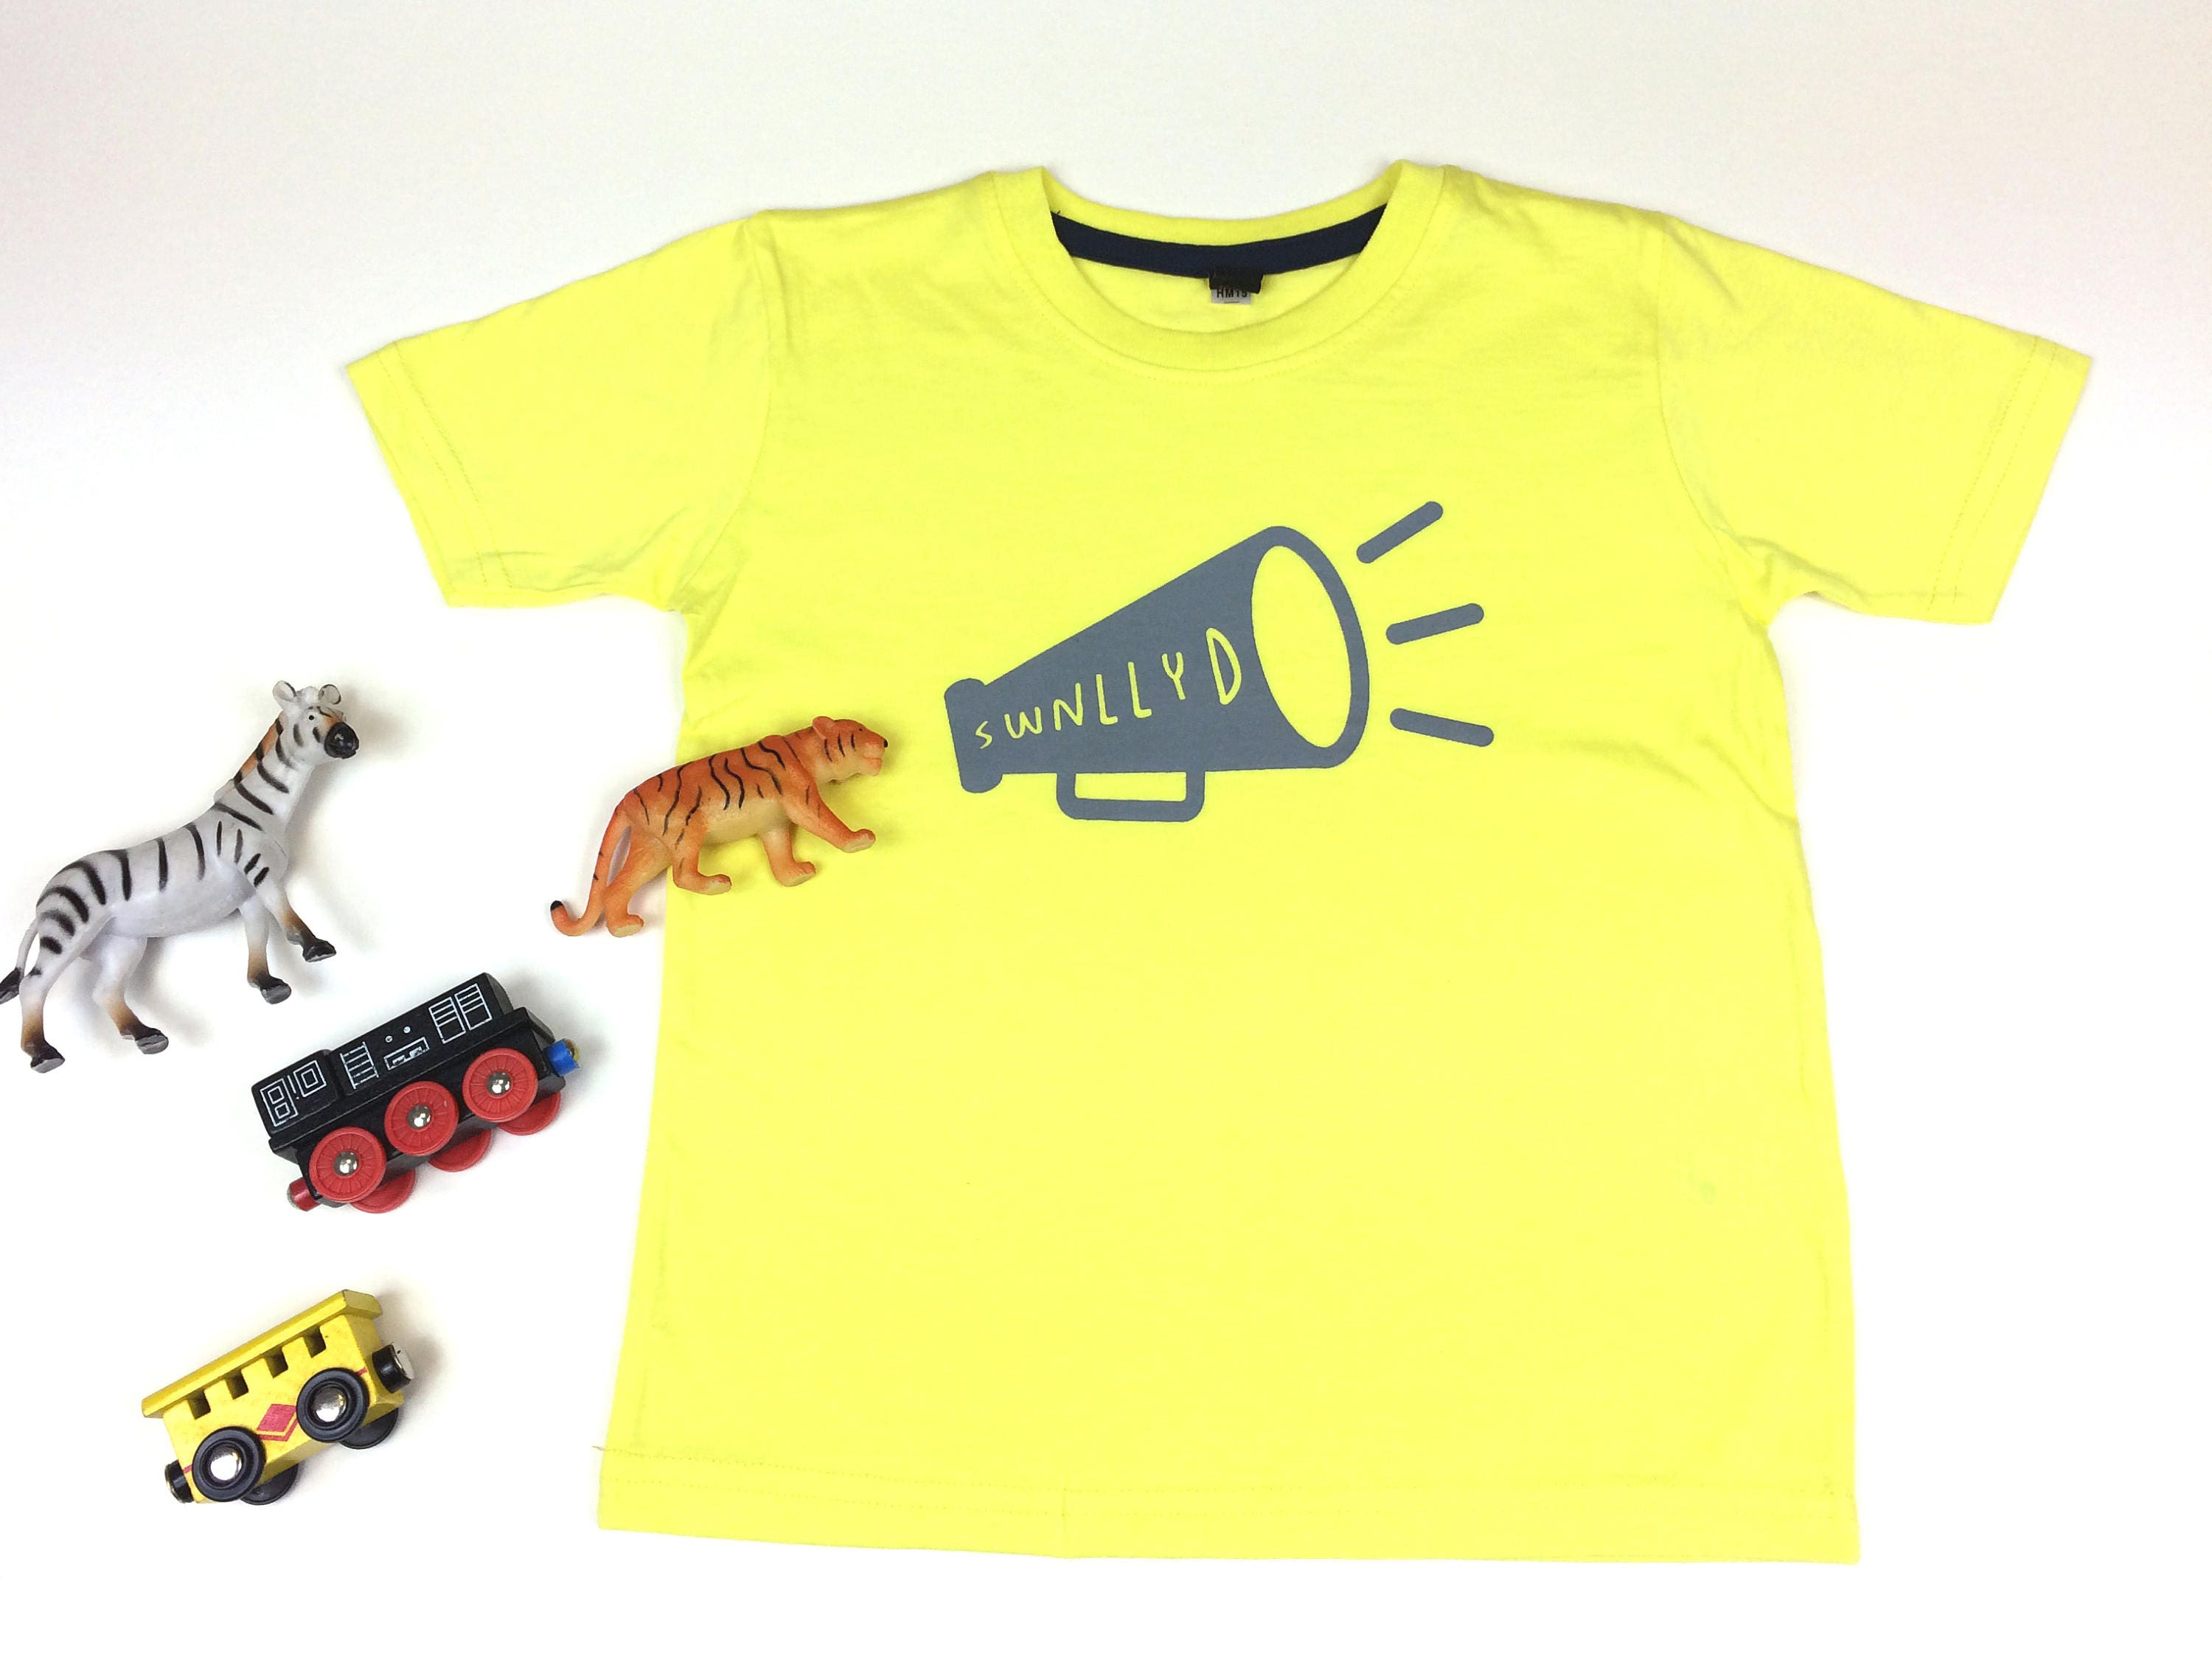 3e4b2b550cf SALE Kids Clothes Yellow T-shirt Welsh Text Swnllyd Noisy Grey Unisex